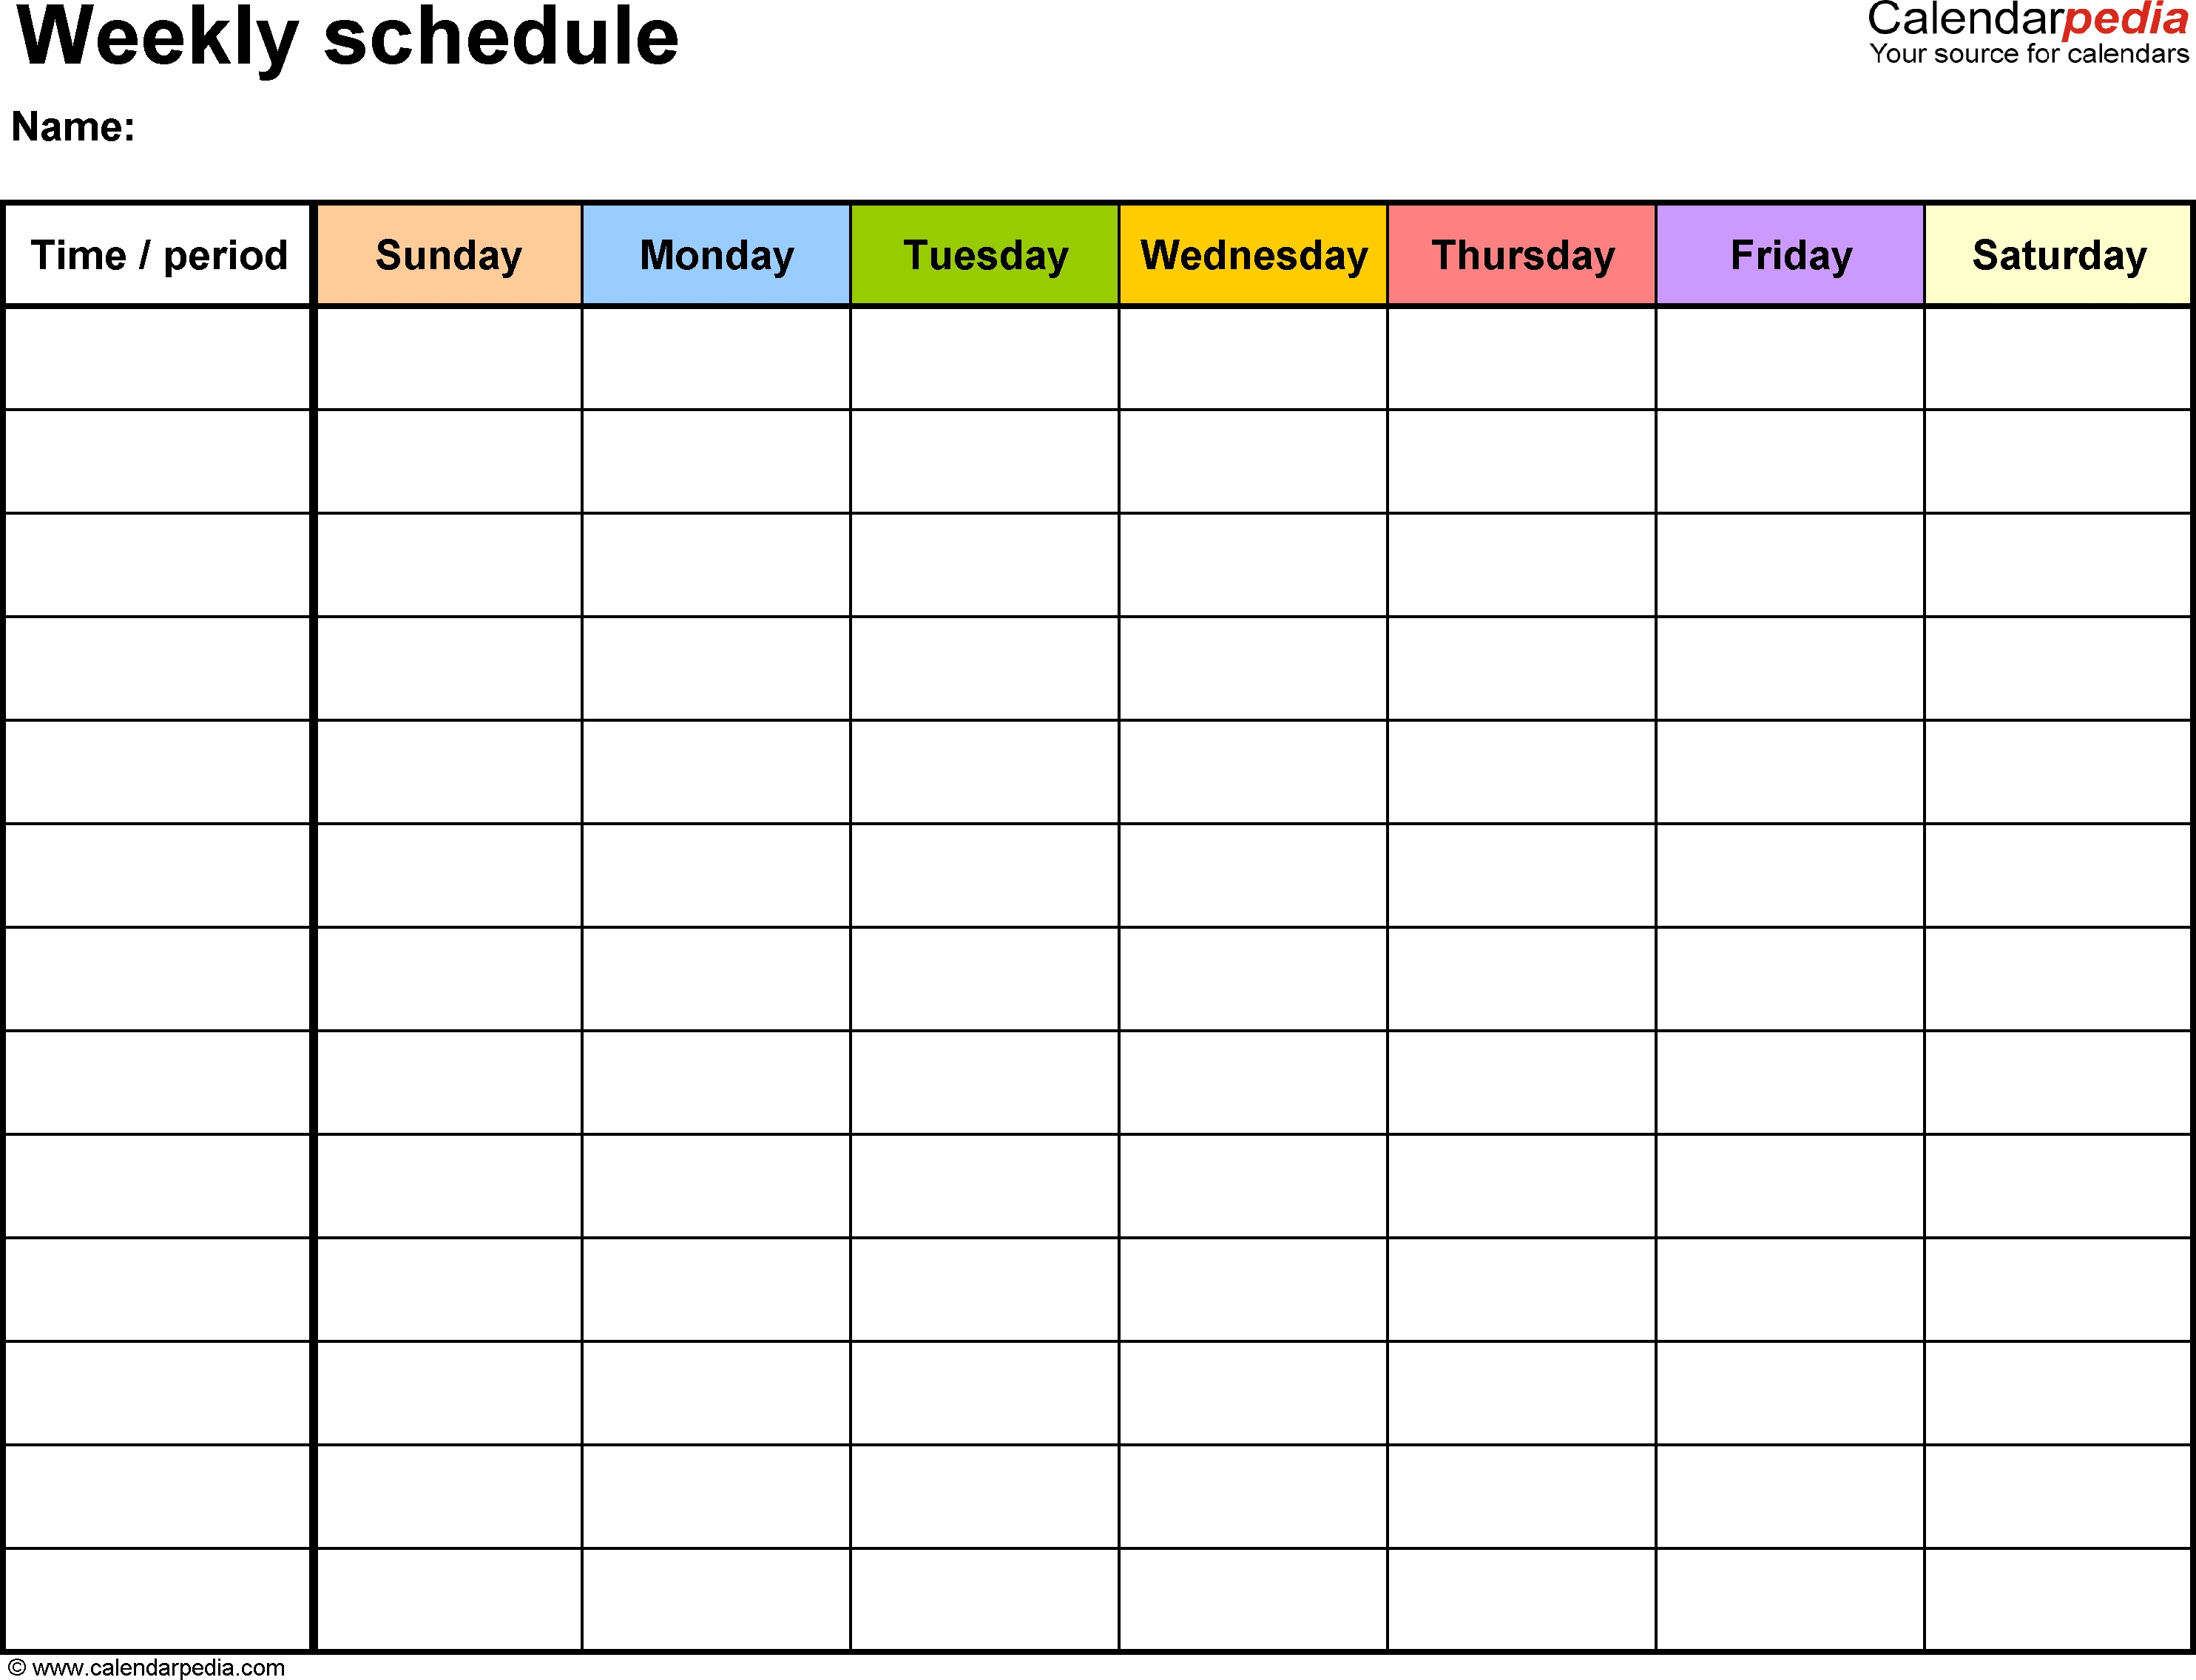 Free Weekly Schedule Templates For Word - 18 Templates with Monday To Friday Schedule Template